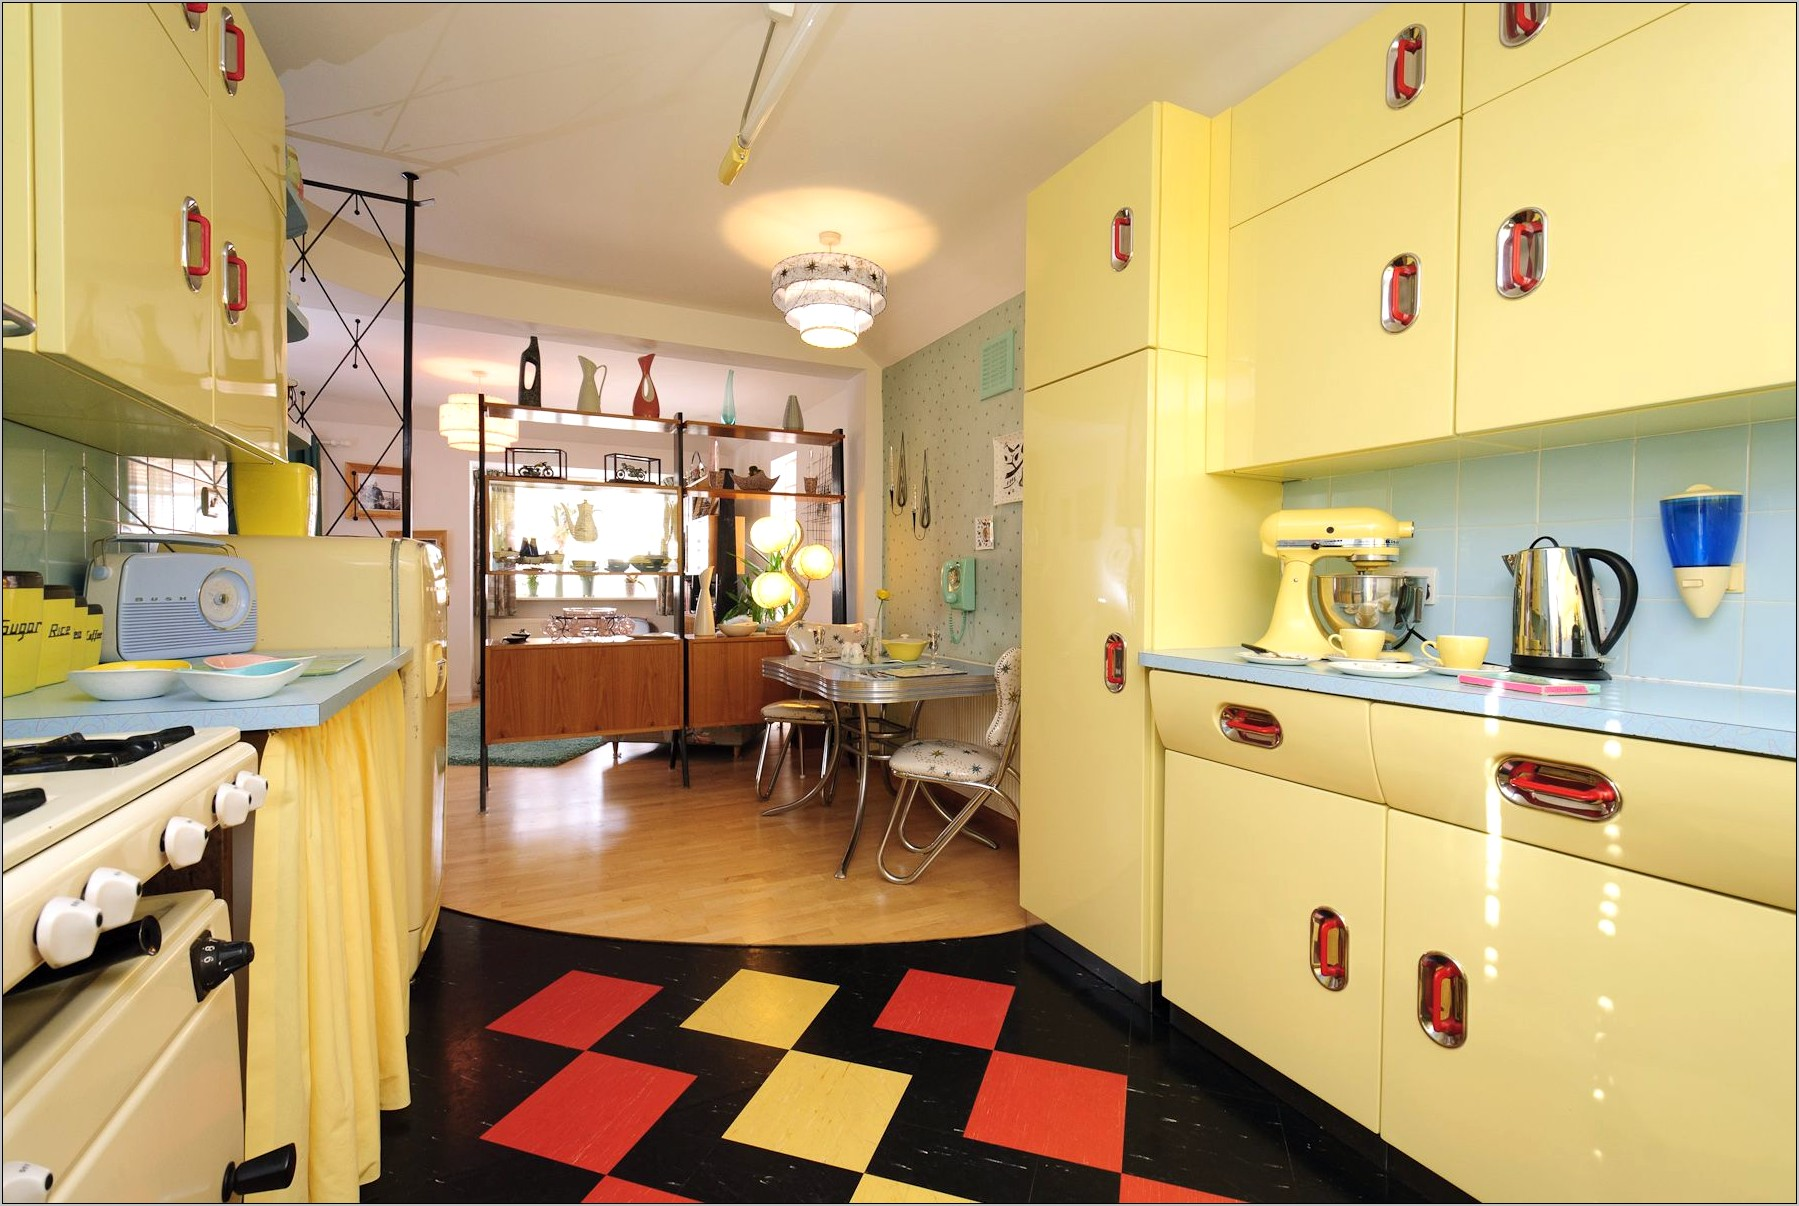 Fun 1950s Retro Decor Kitchen